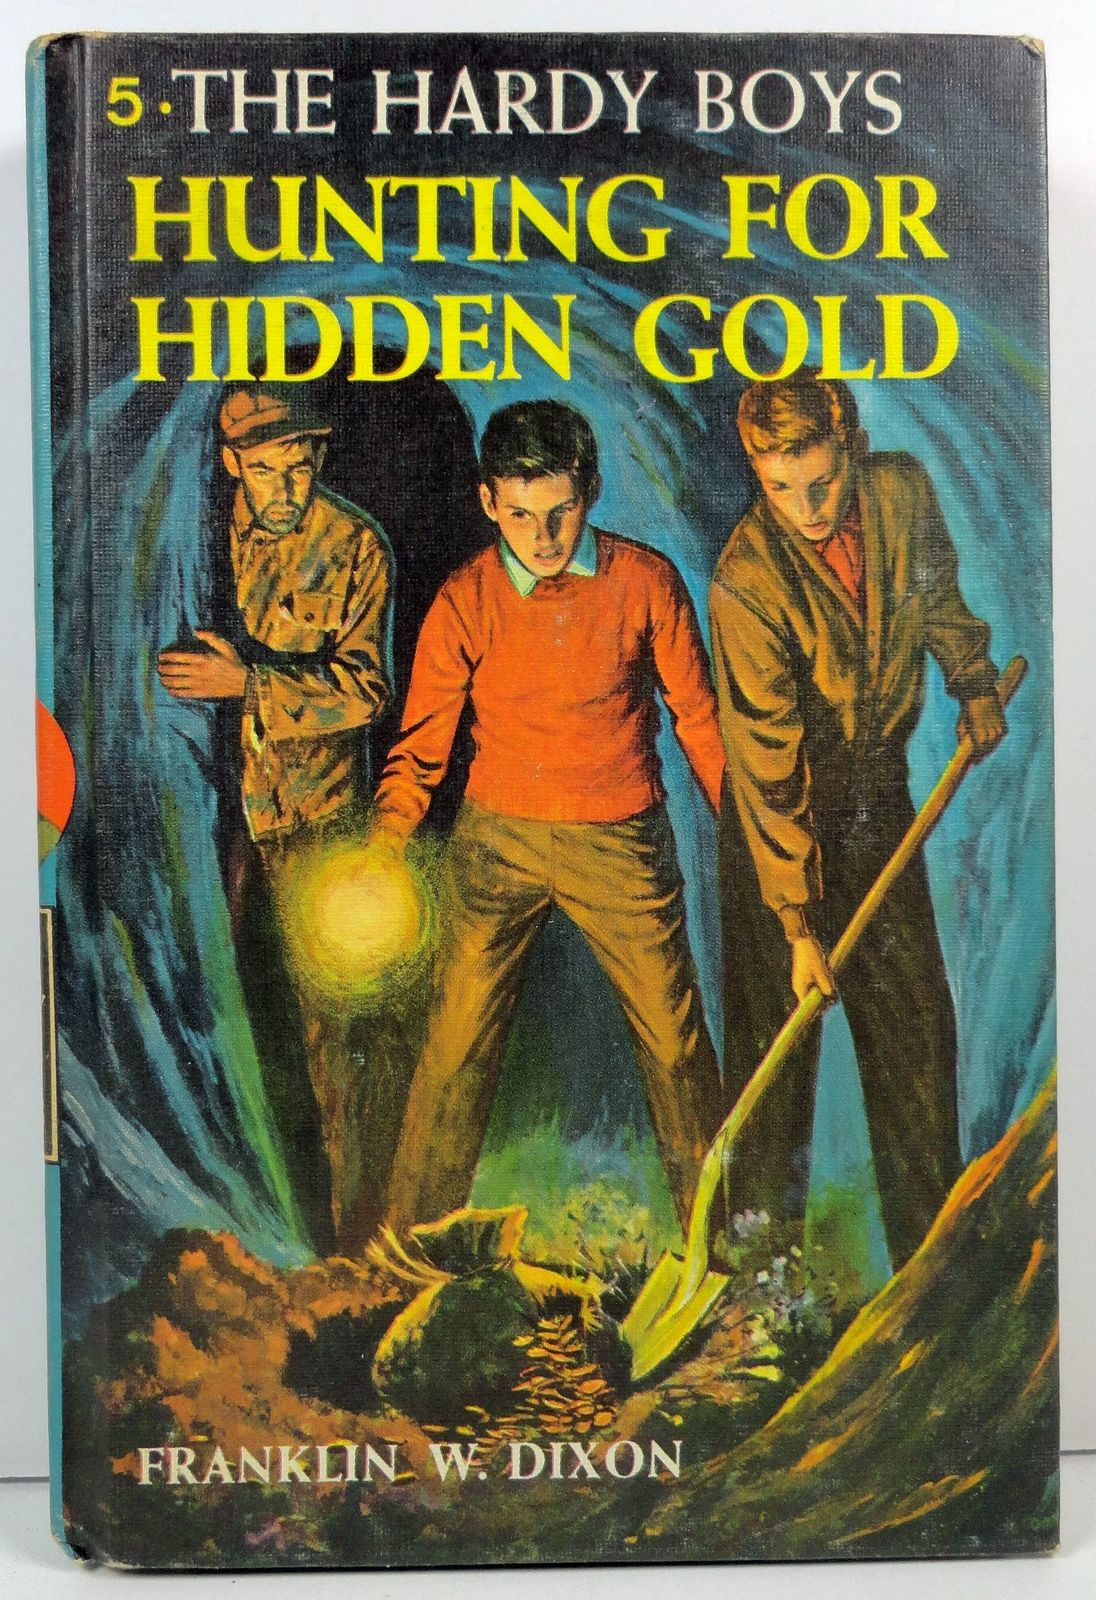 Primary image for The Hardy Boys Hunting for Hidden Gold Franklin W. Dixon